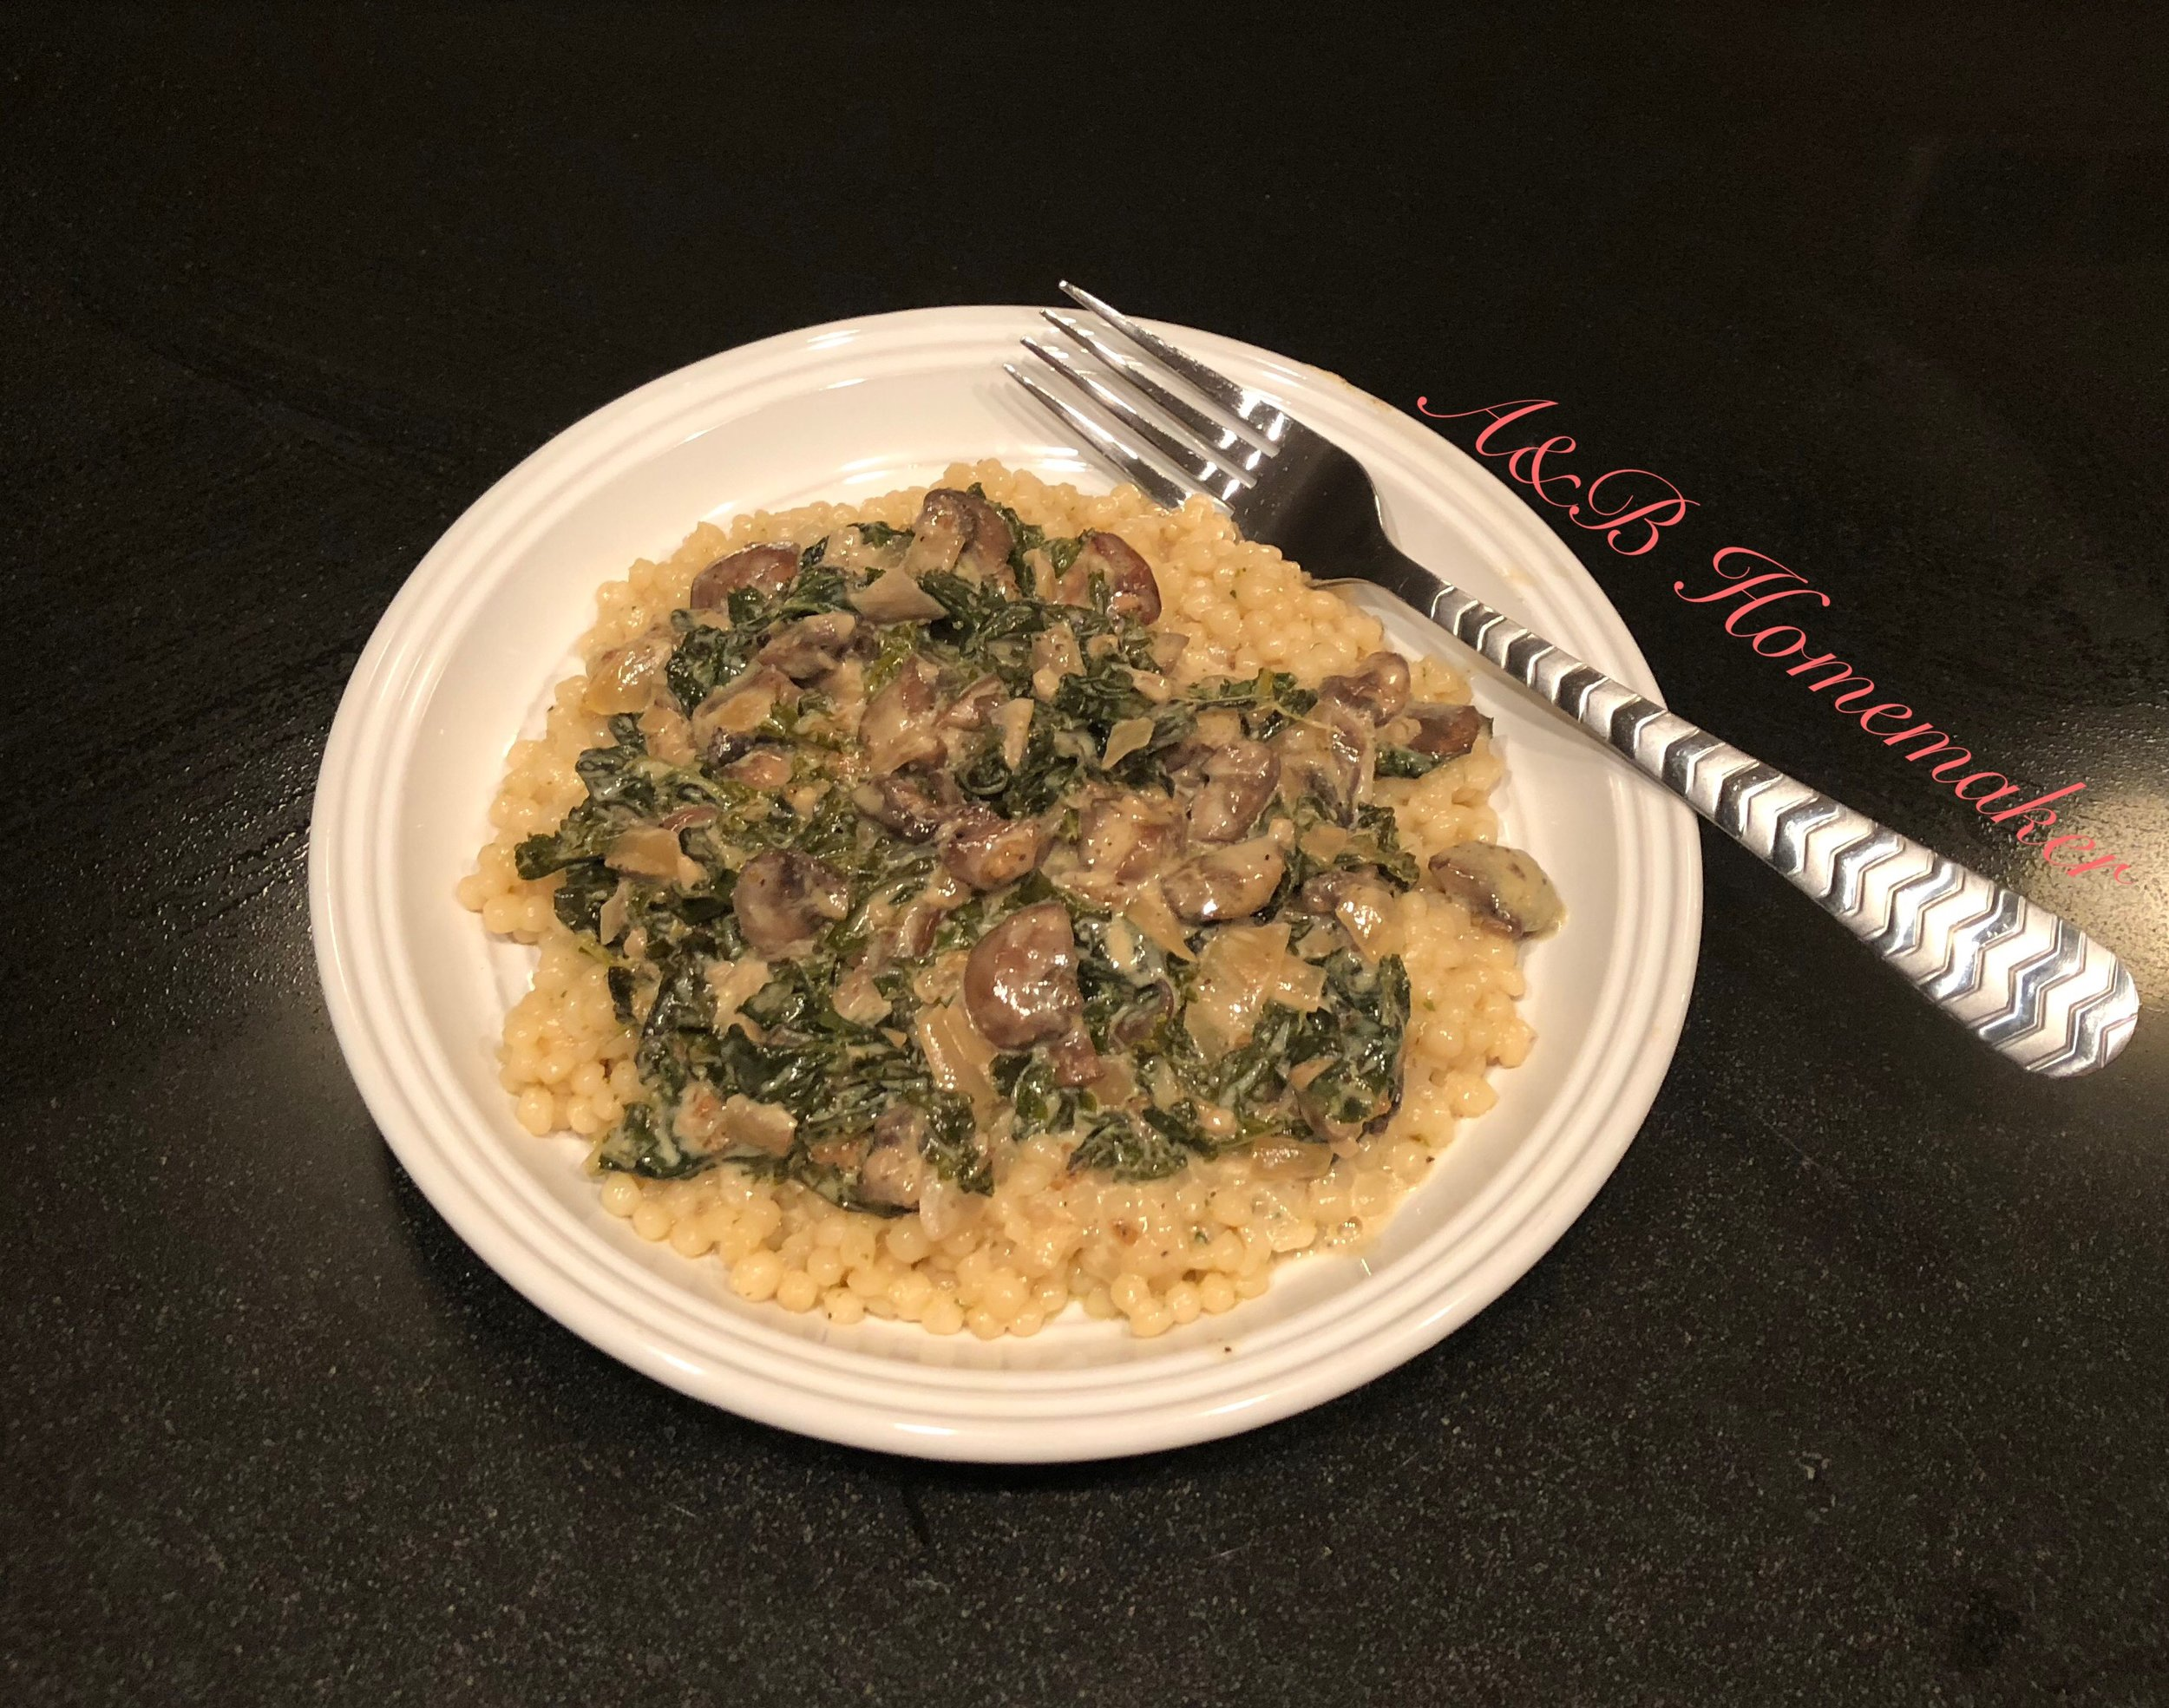 Creamy kale and mushroom sauce over couscous